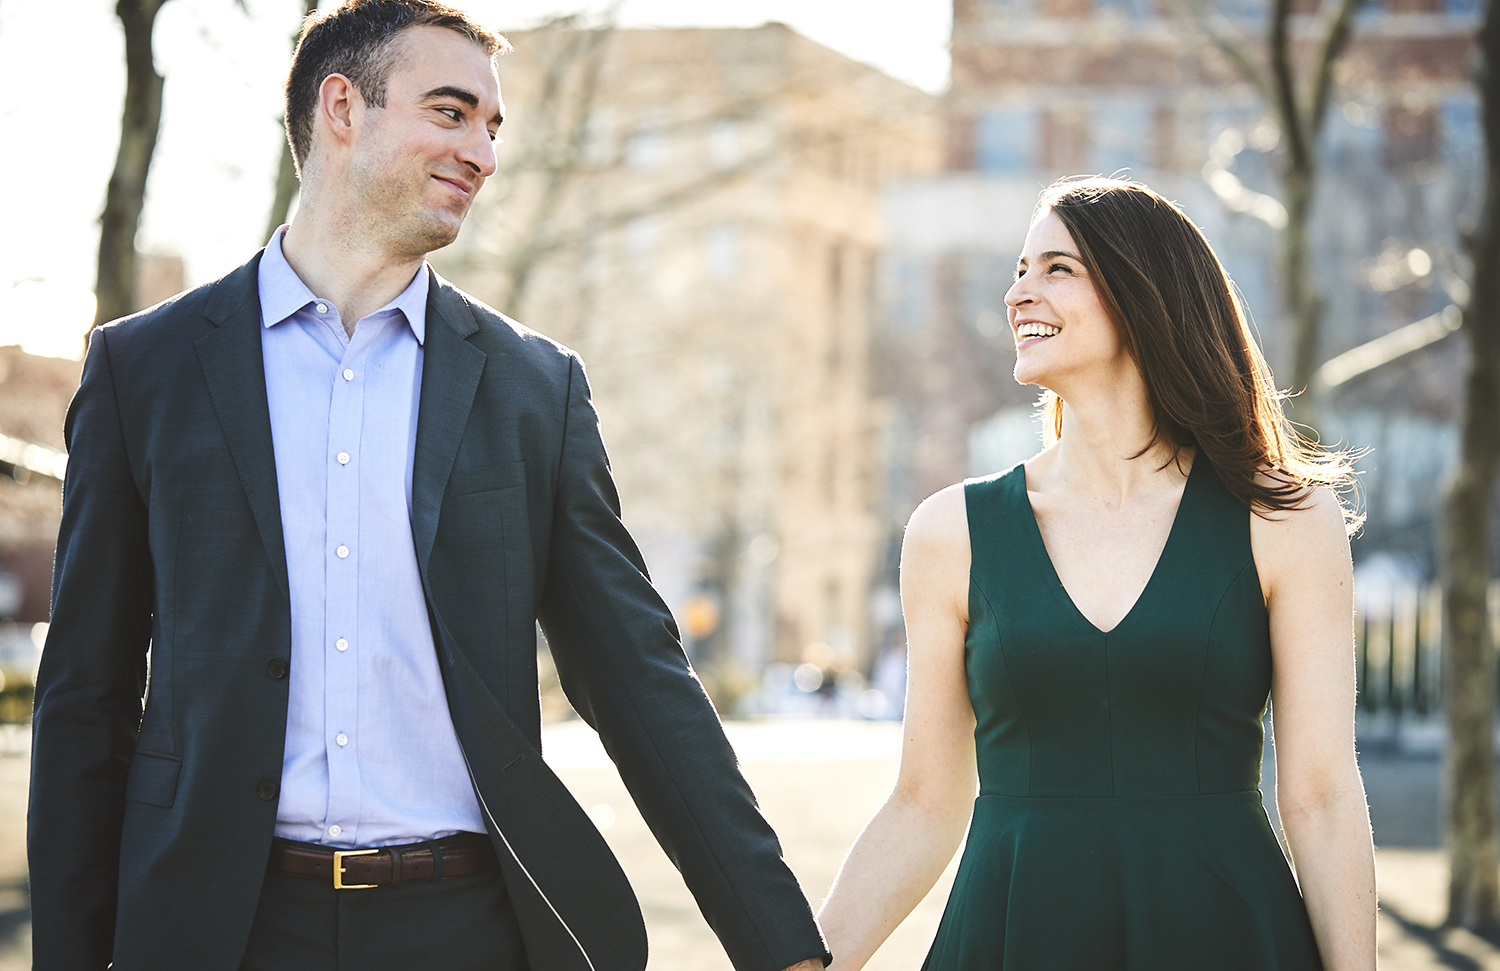 180422_StevensInstitureofTechnologyEngagementPhotography_HobokenEngagement Photography_By_BriJohnsonWeddings_0014.jpg